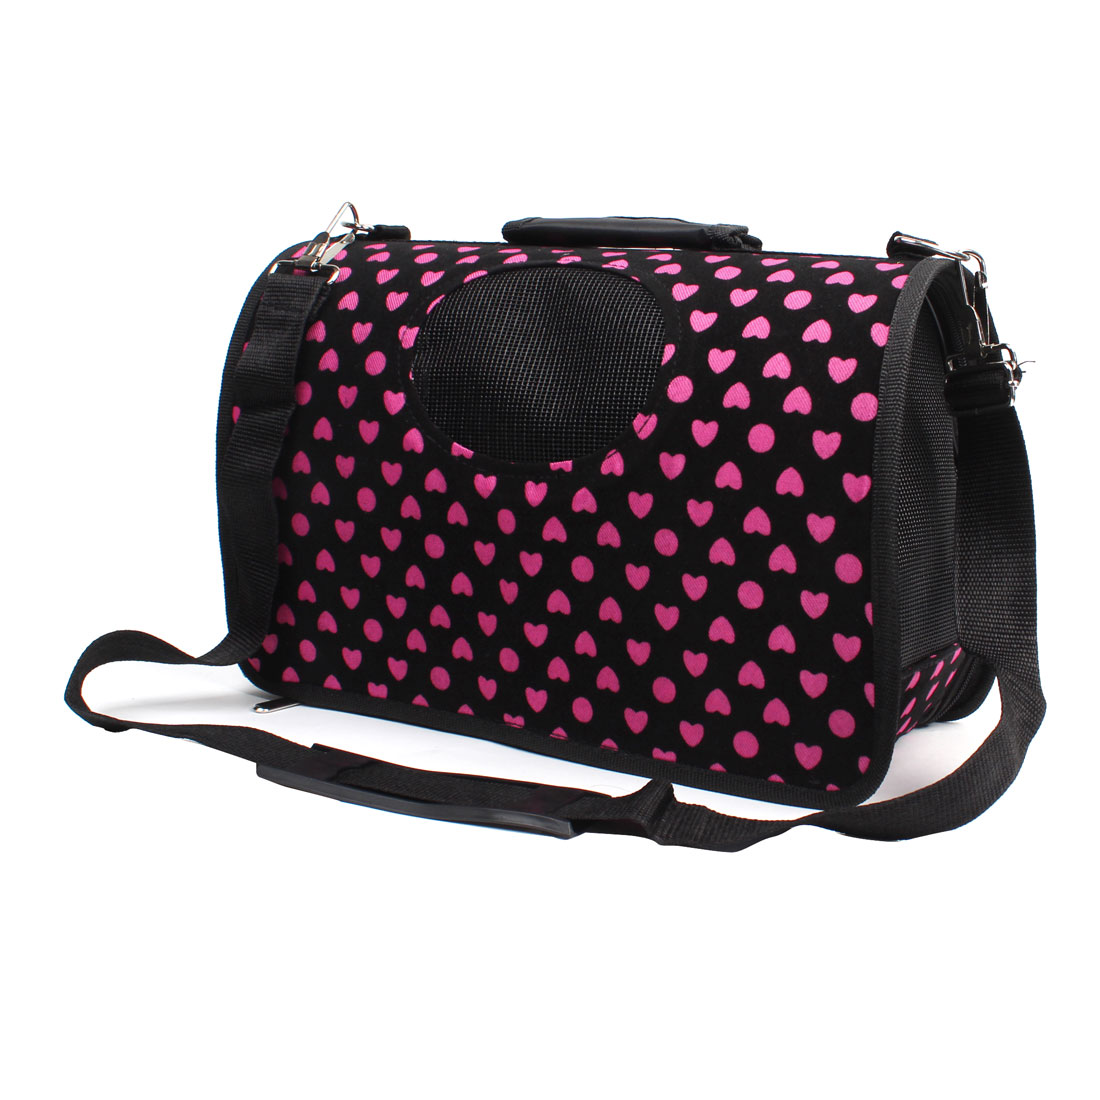 Dot Heart Pattern Dog Doggie Puppy Travel Shopping Carrier Carry Bag Black Pink